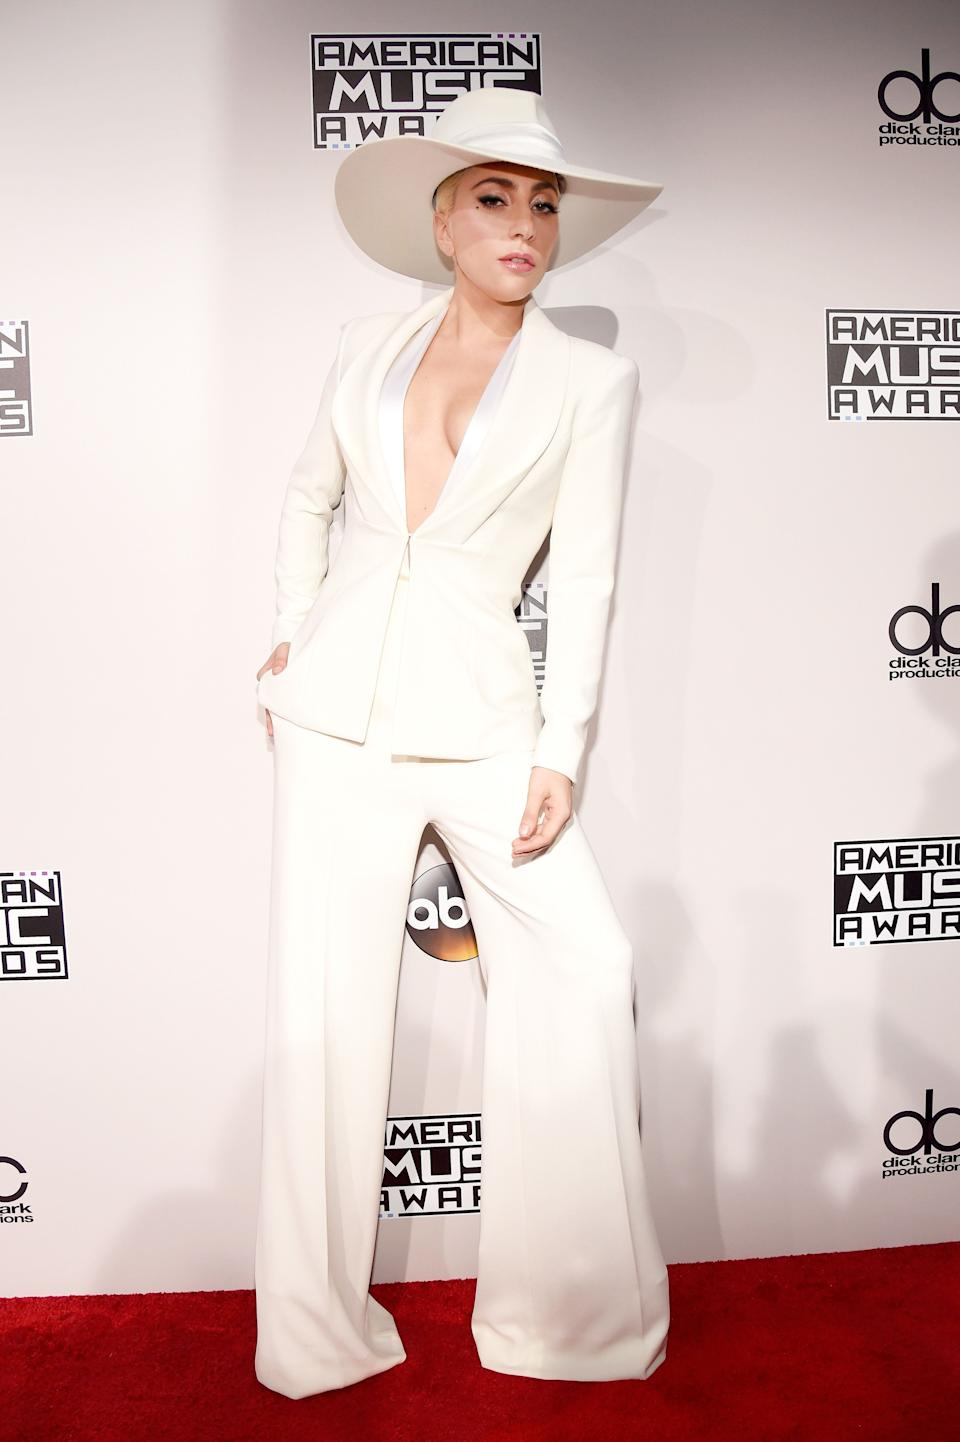 Gaga rocks a sleek white suit on the red carpet at the 2016 American Music Awards.